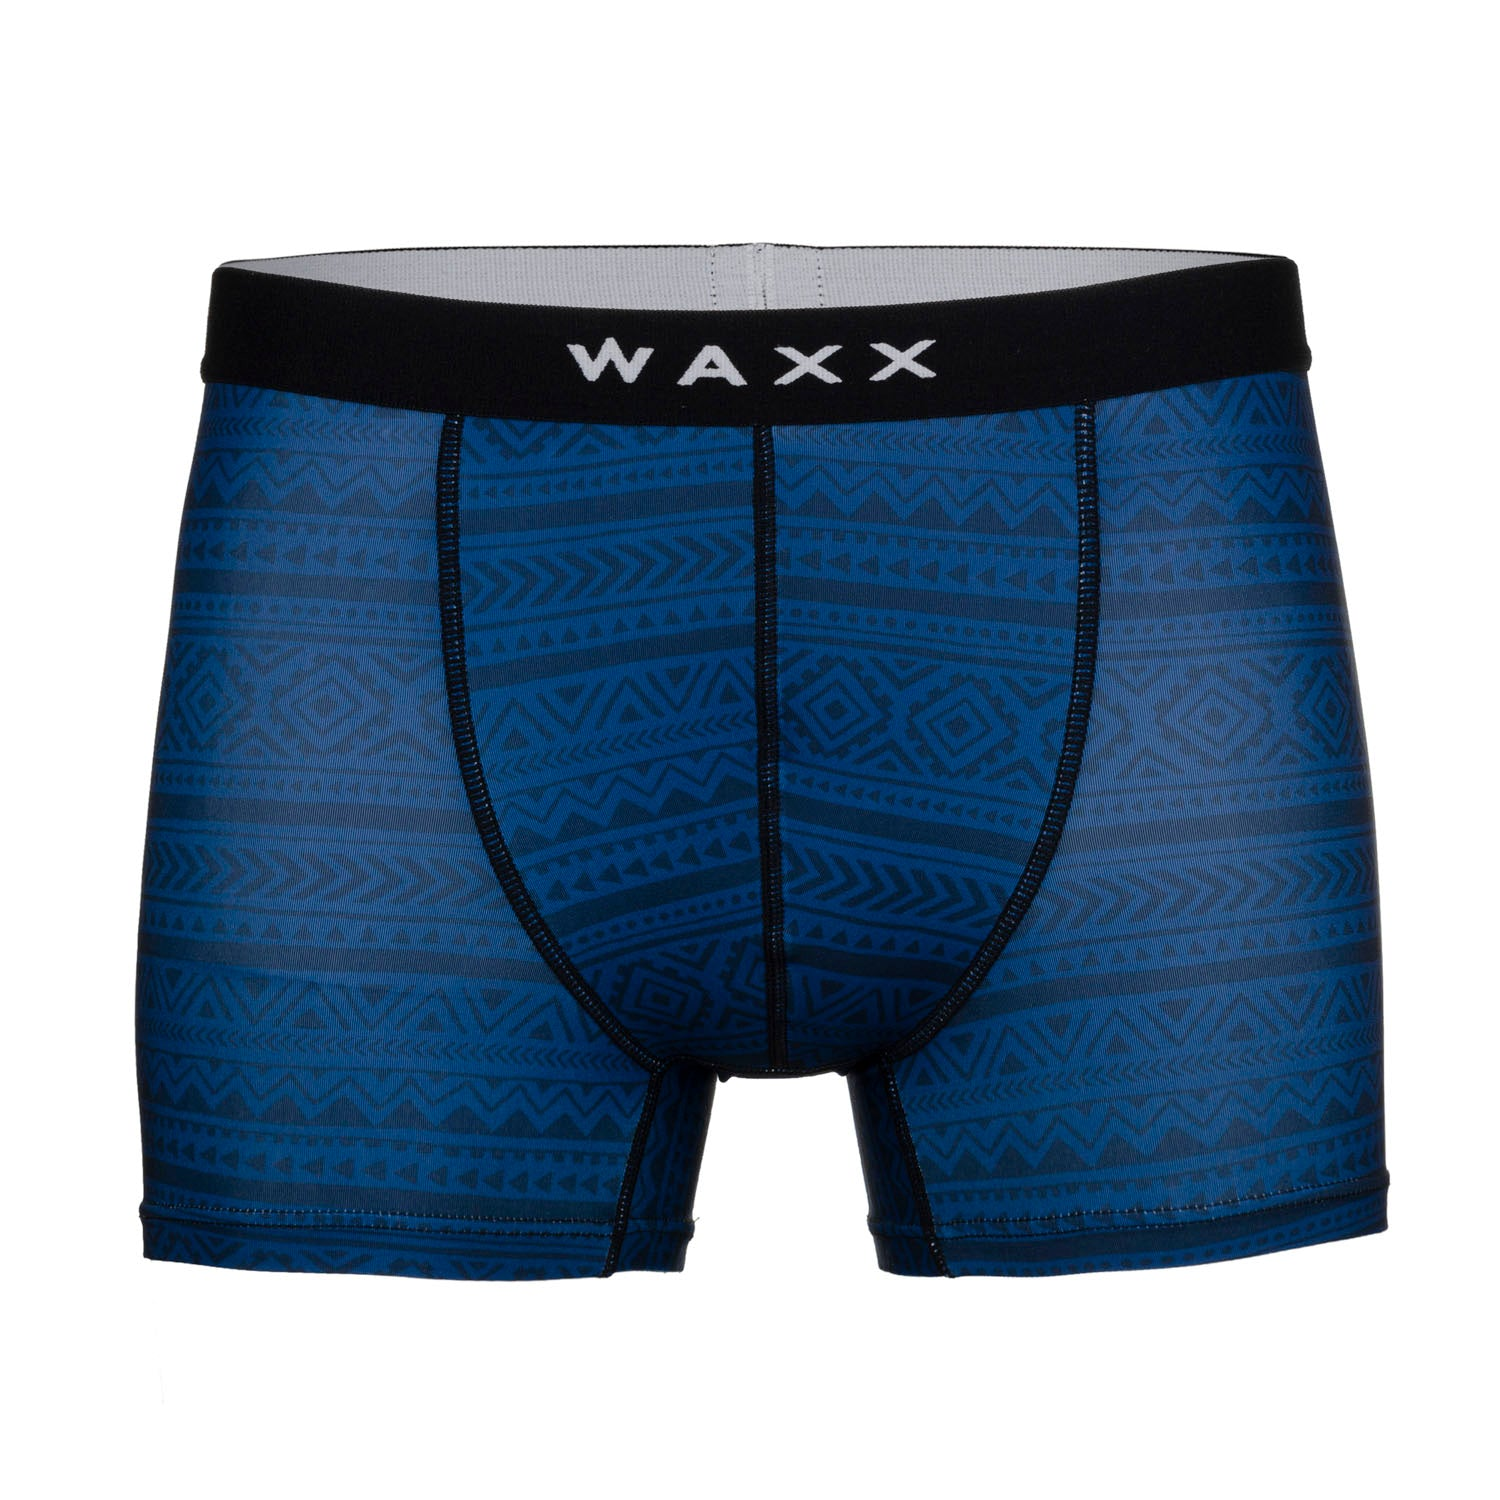 Waxx Men's Trunk Boxer Short Ethny